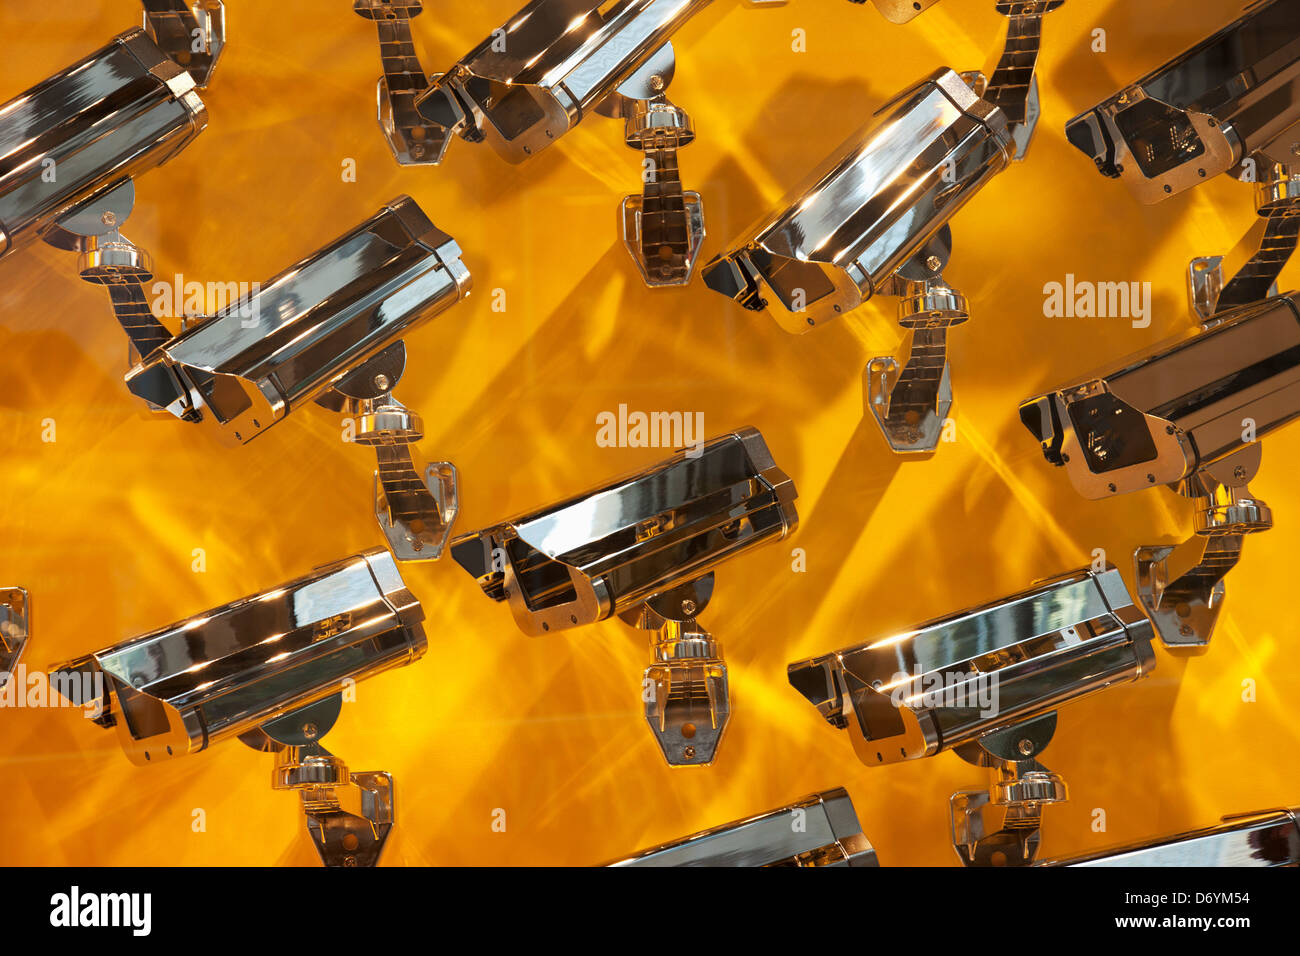 Surveillance camera sculptures at the Louis Vuitton store, Chicago, Cook County, Illinois, USA - Stock Image